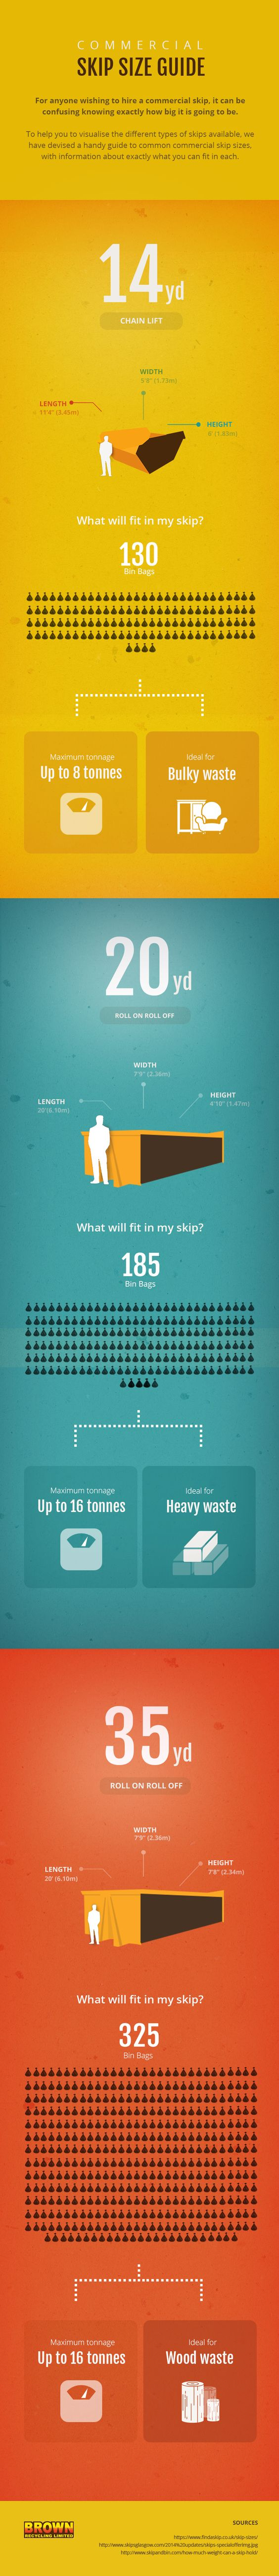 What Skip Size Do I Need? [infographic]